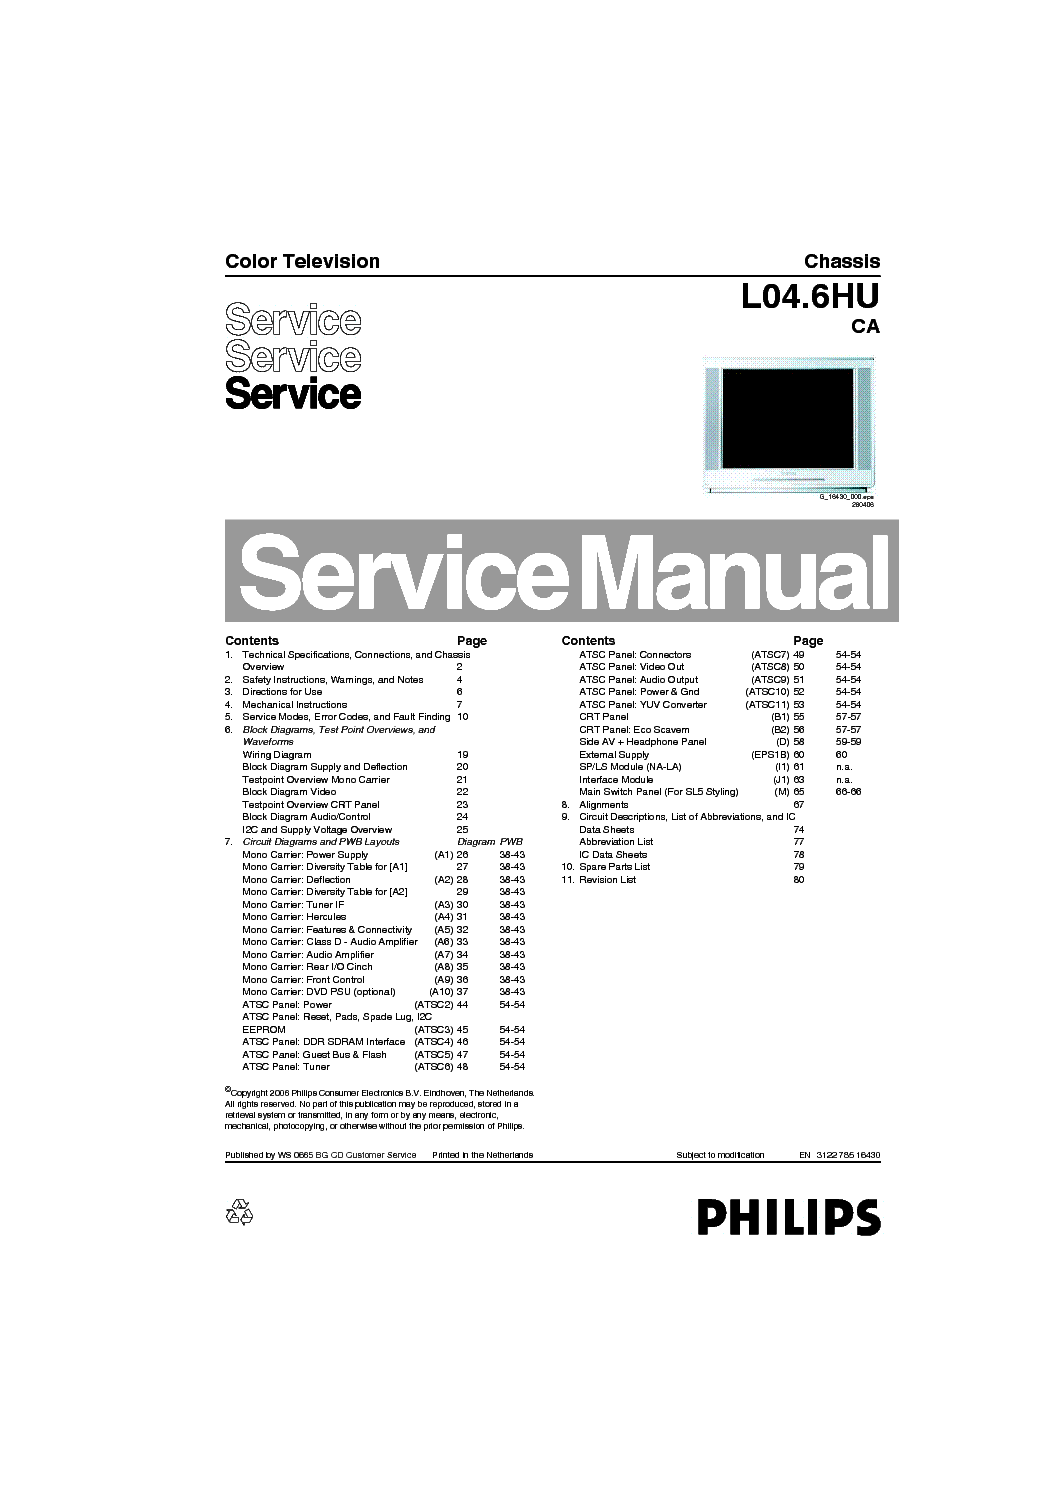 PHILIPS CHASSIS L04.6HU-CA Service Manual free download